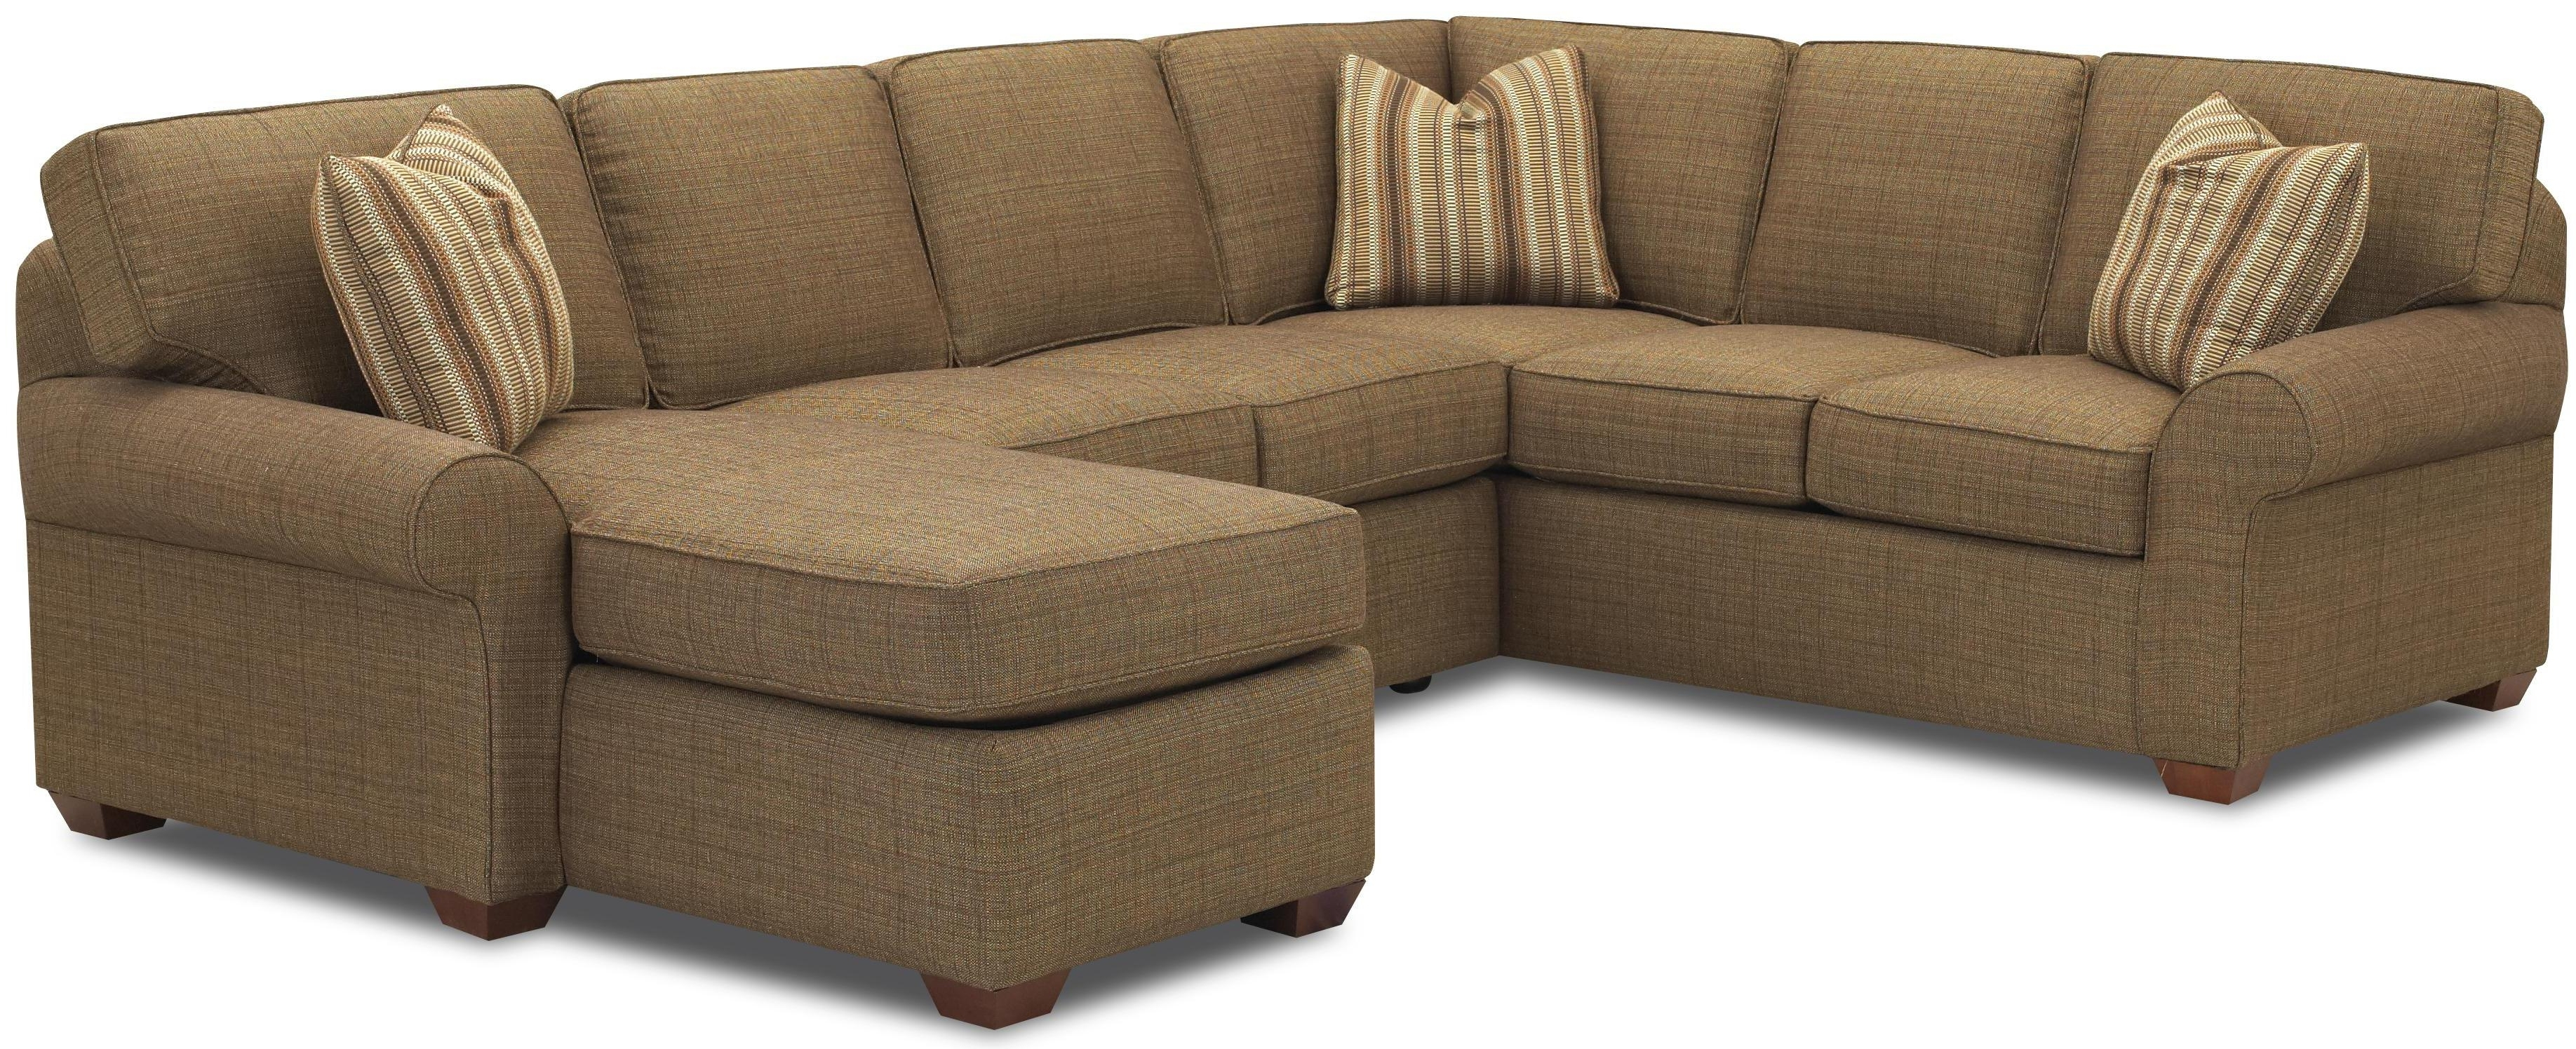 Sectional Sofa Group With Right Chaise Loungeklaussner (View 9 of 20)